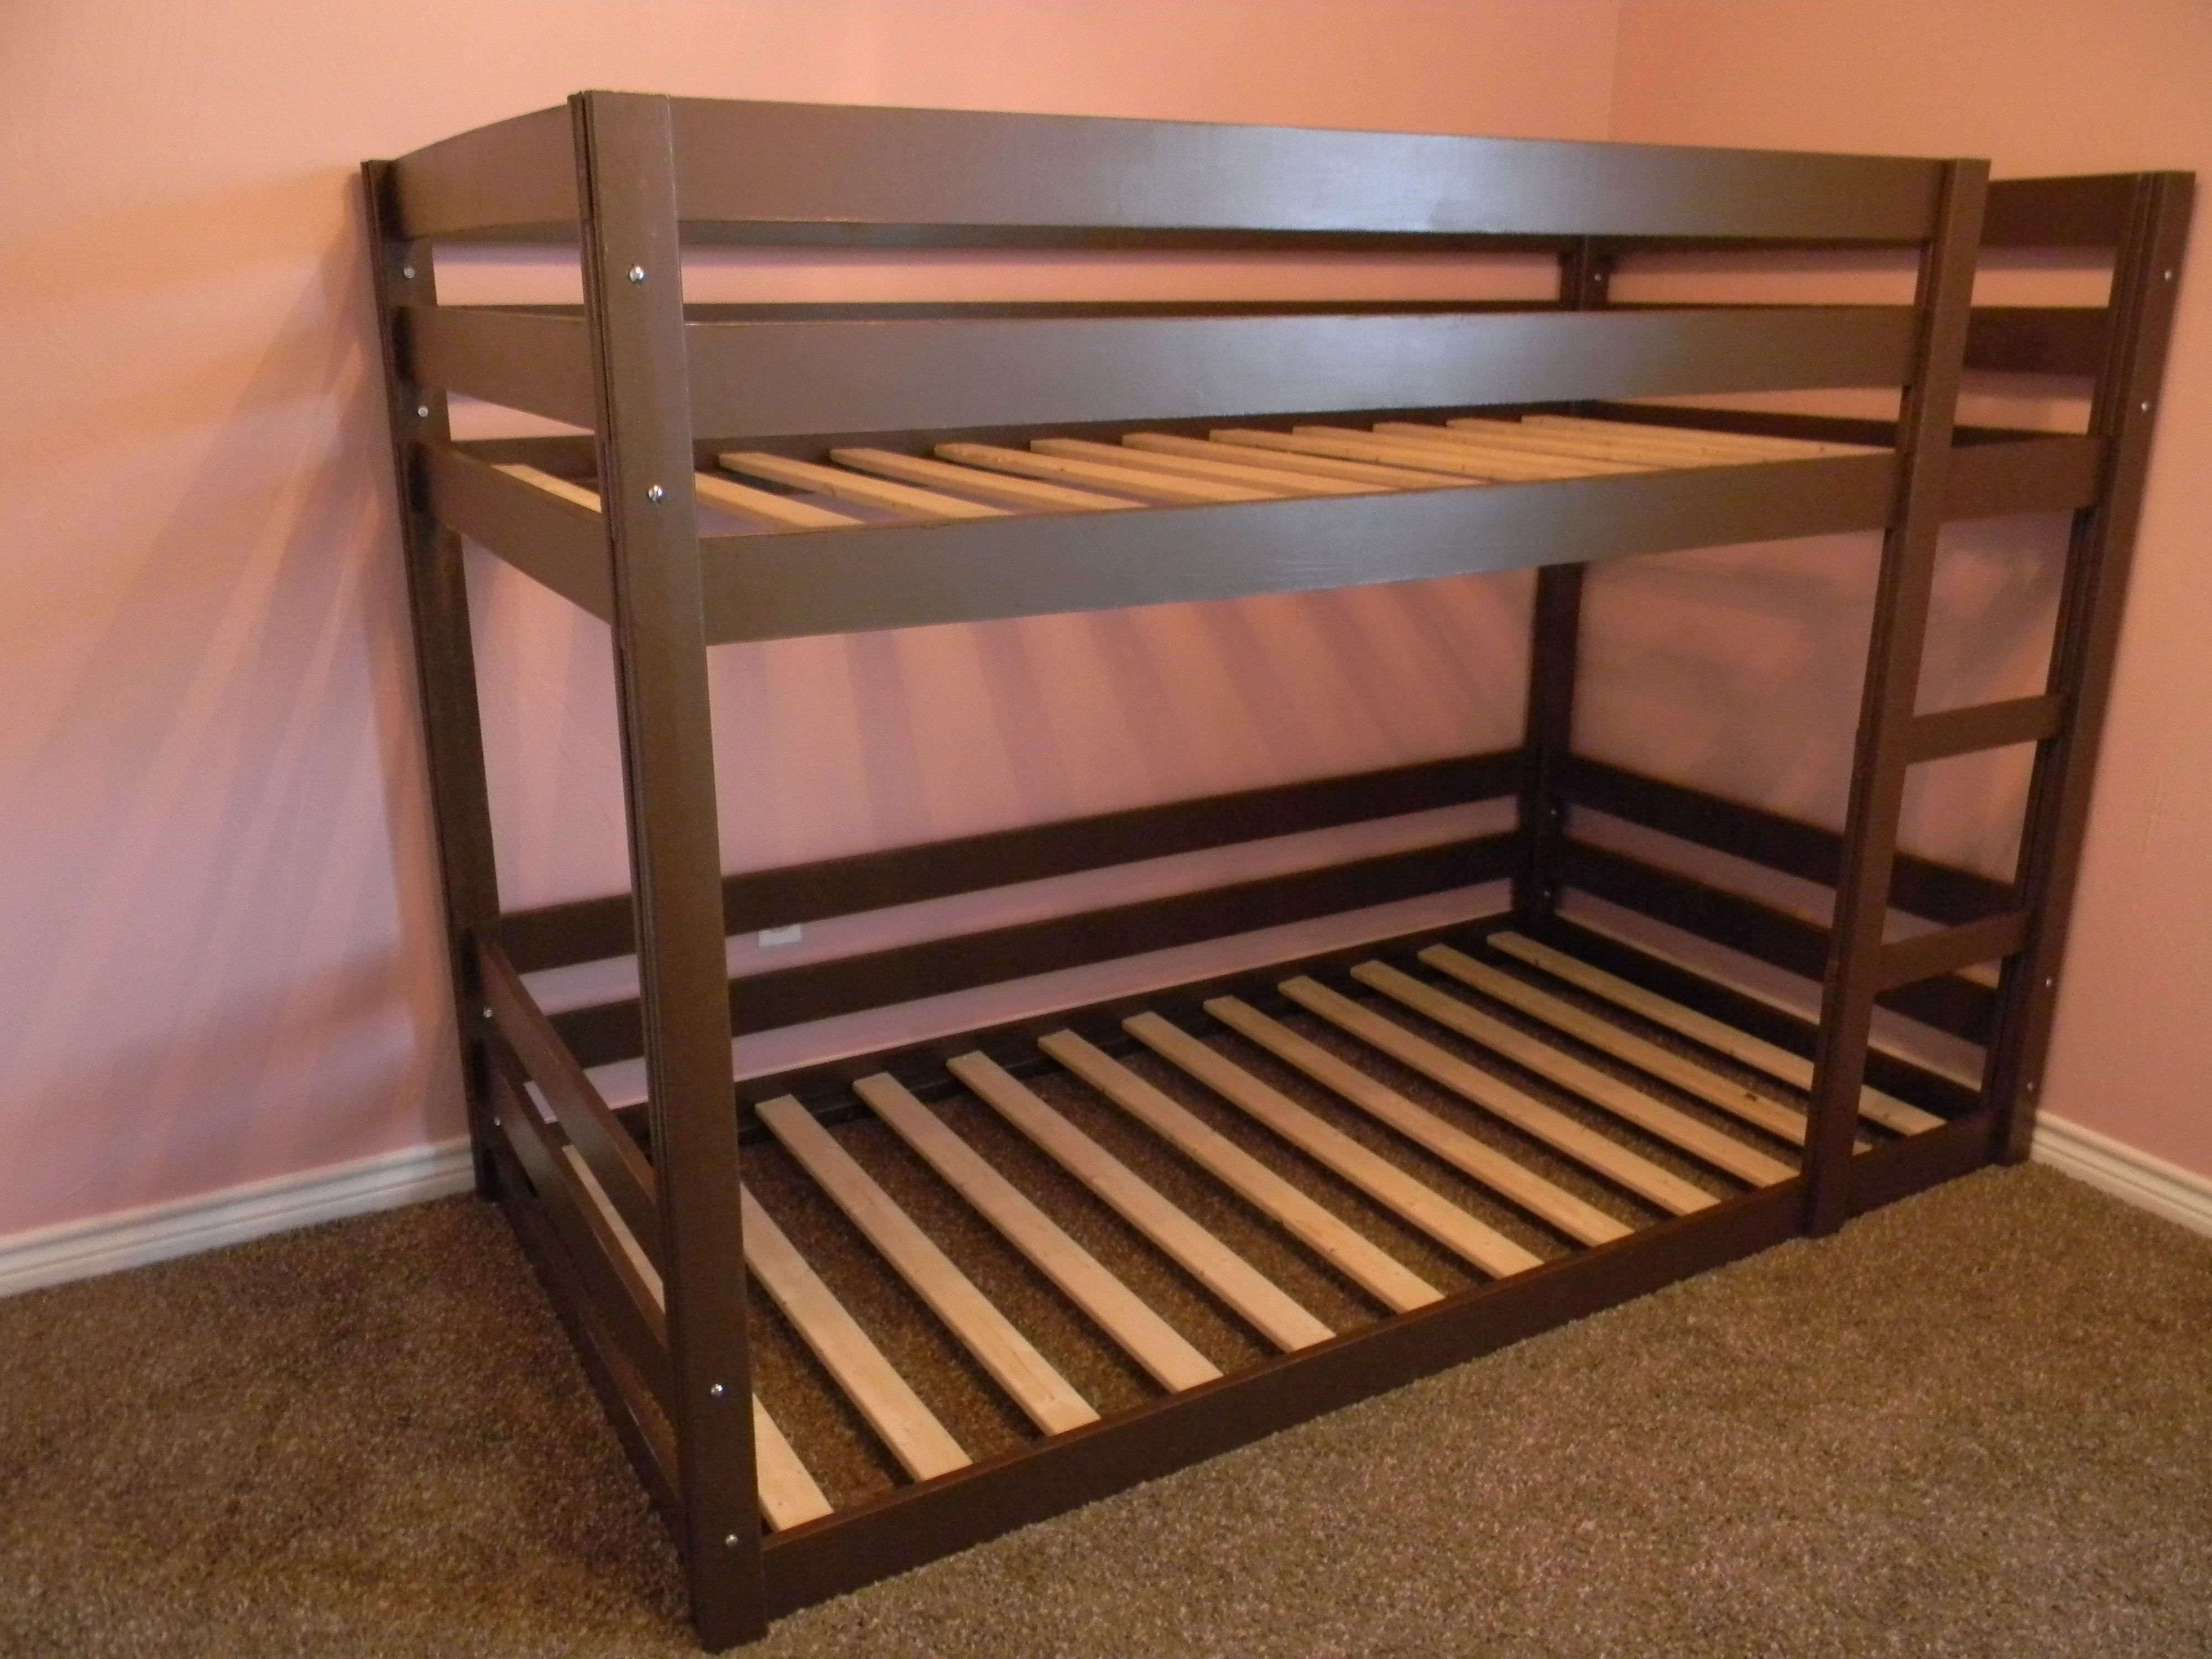 Diy Bunk Beds For The Girls That The Hubby Will Feel